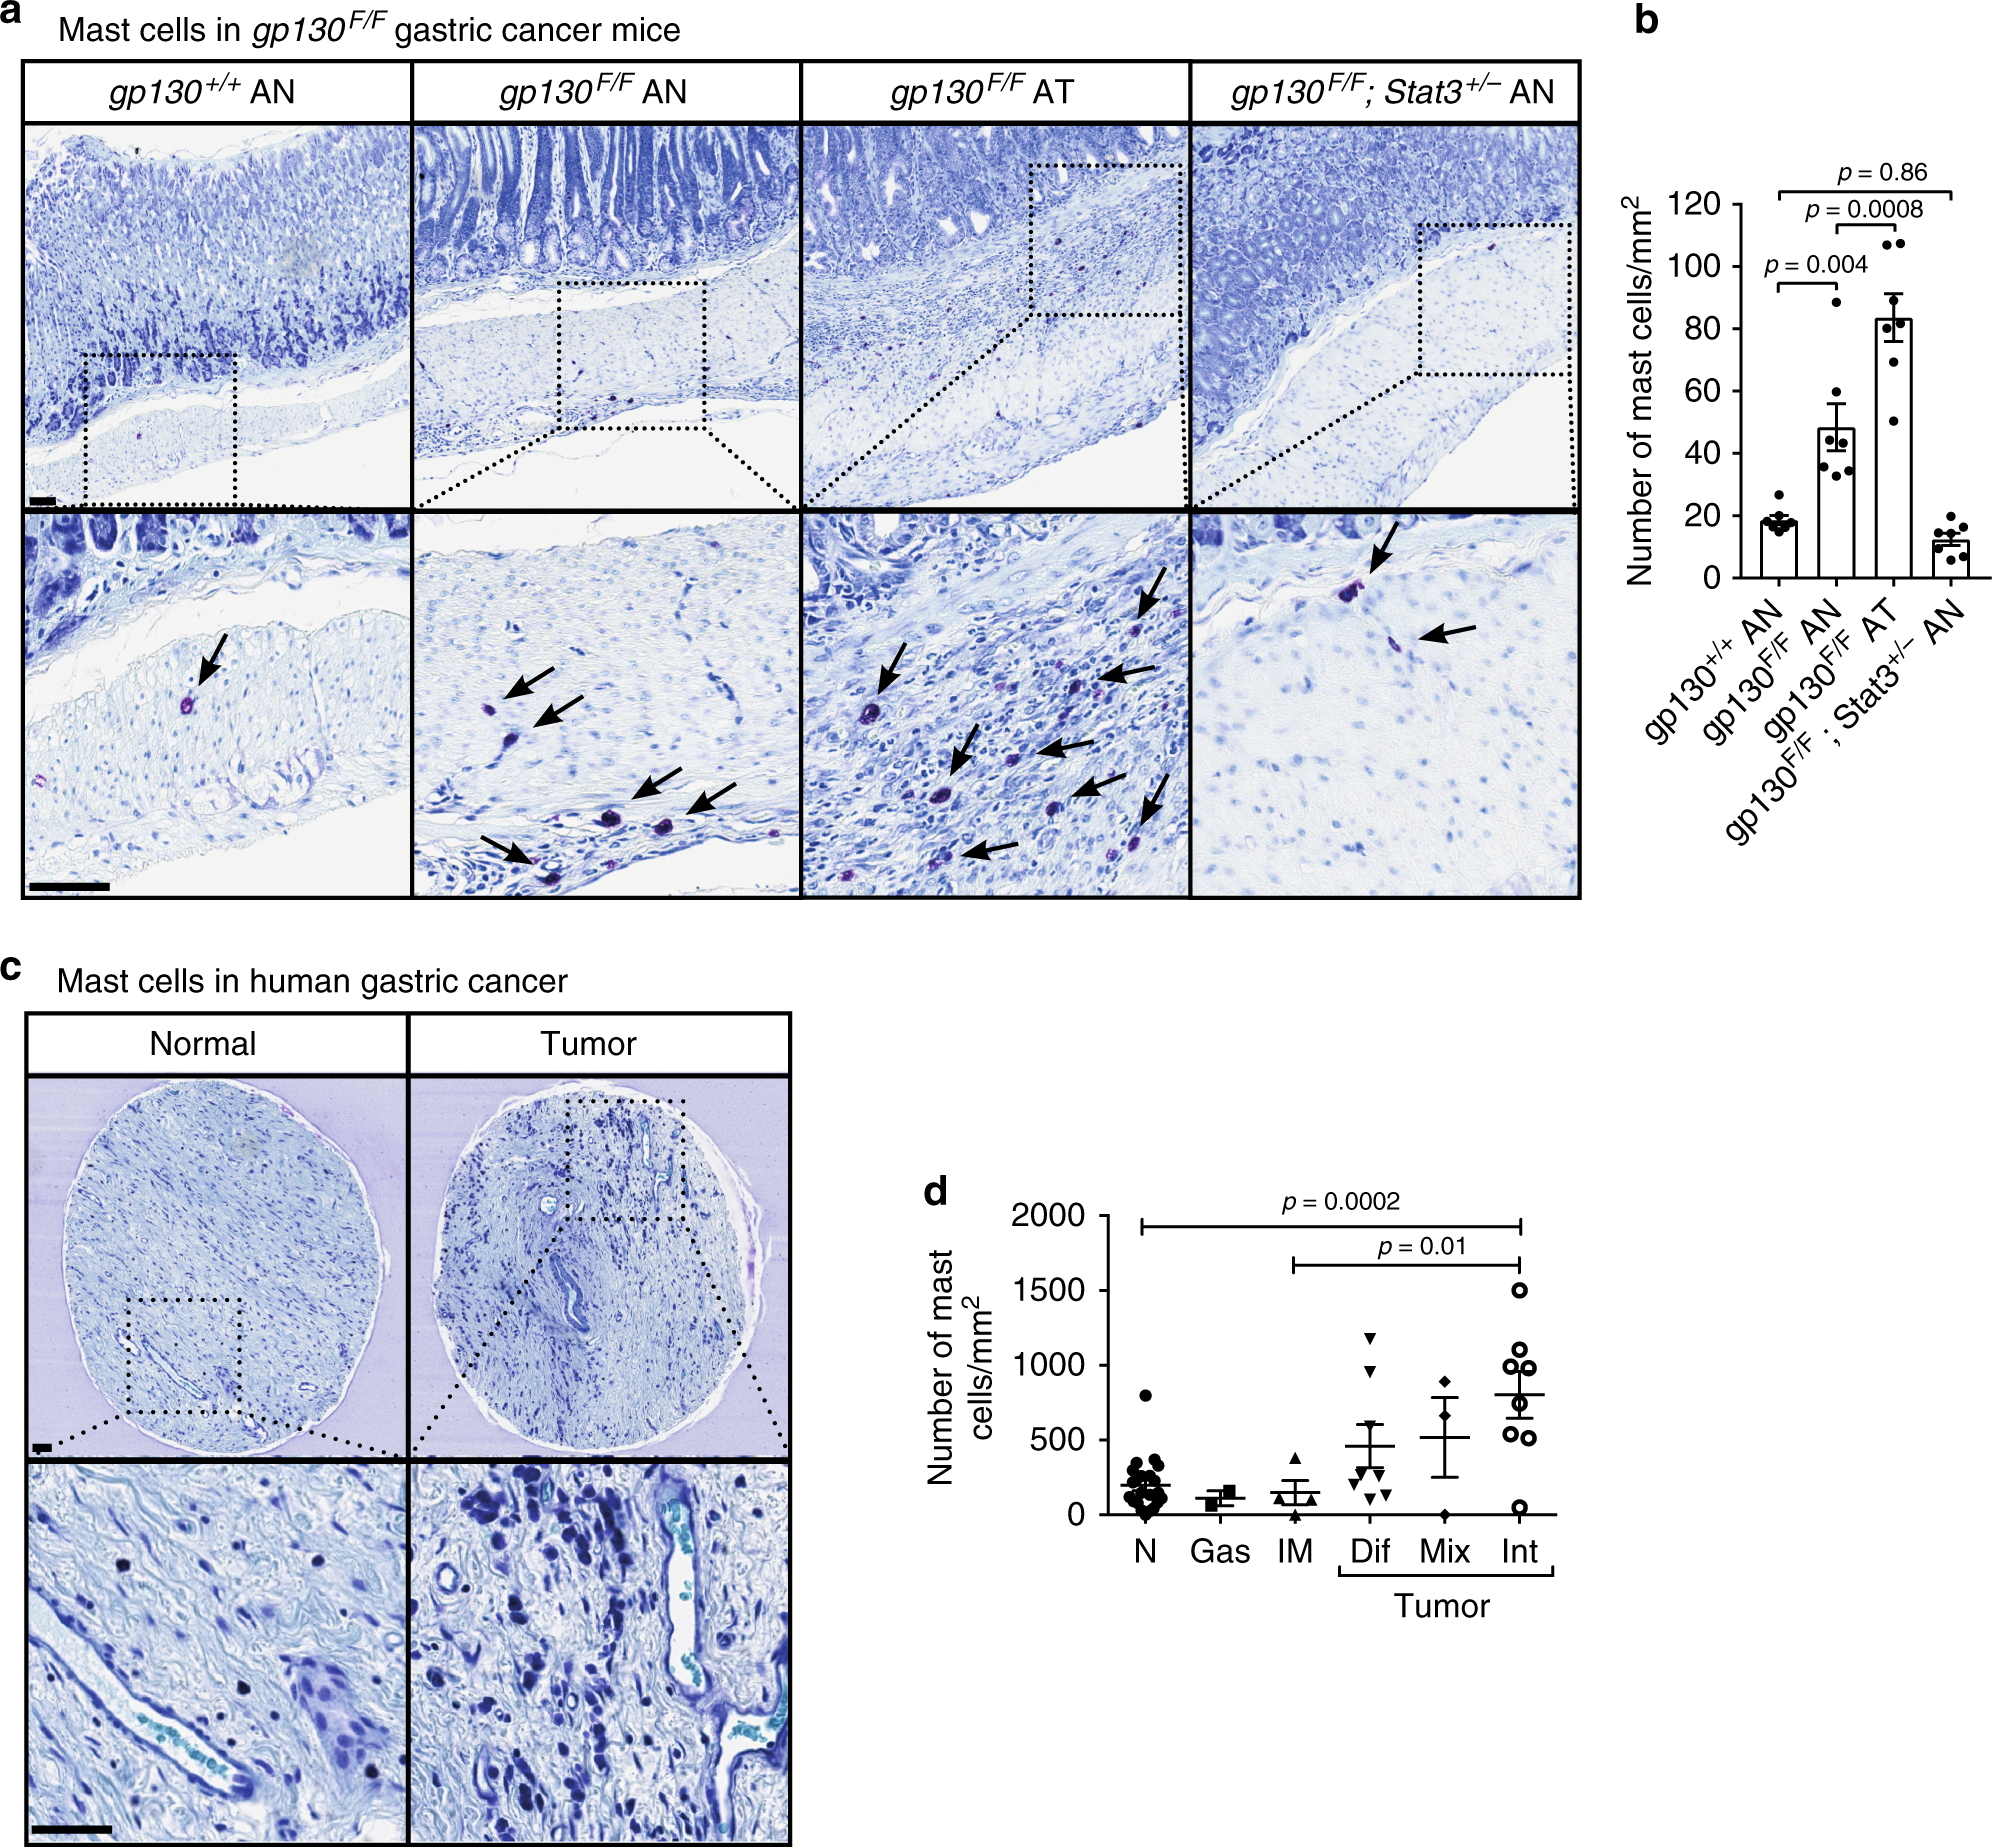 IL-33-mediated mast cell activation promotes gastric cancer